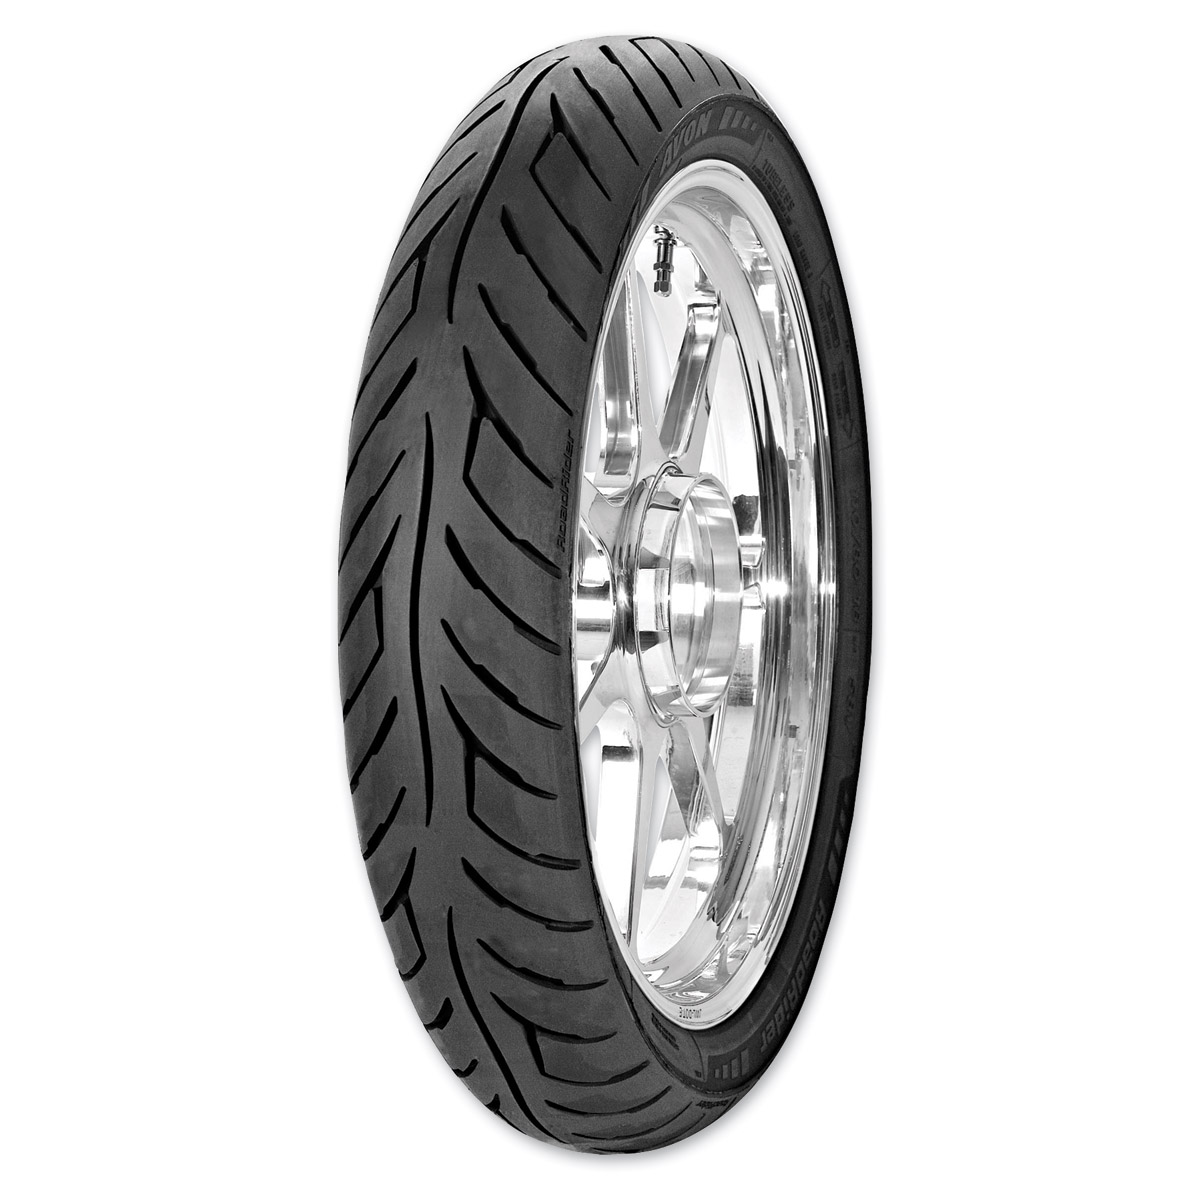 Avon AM26 Roadrider 100/90-19 Front/Rear Tire